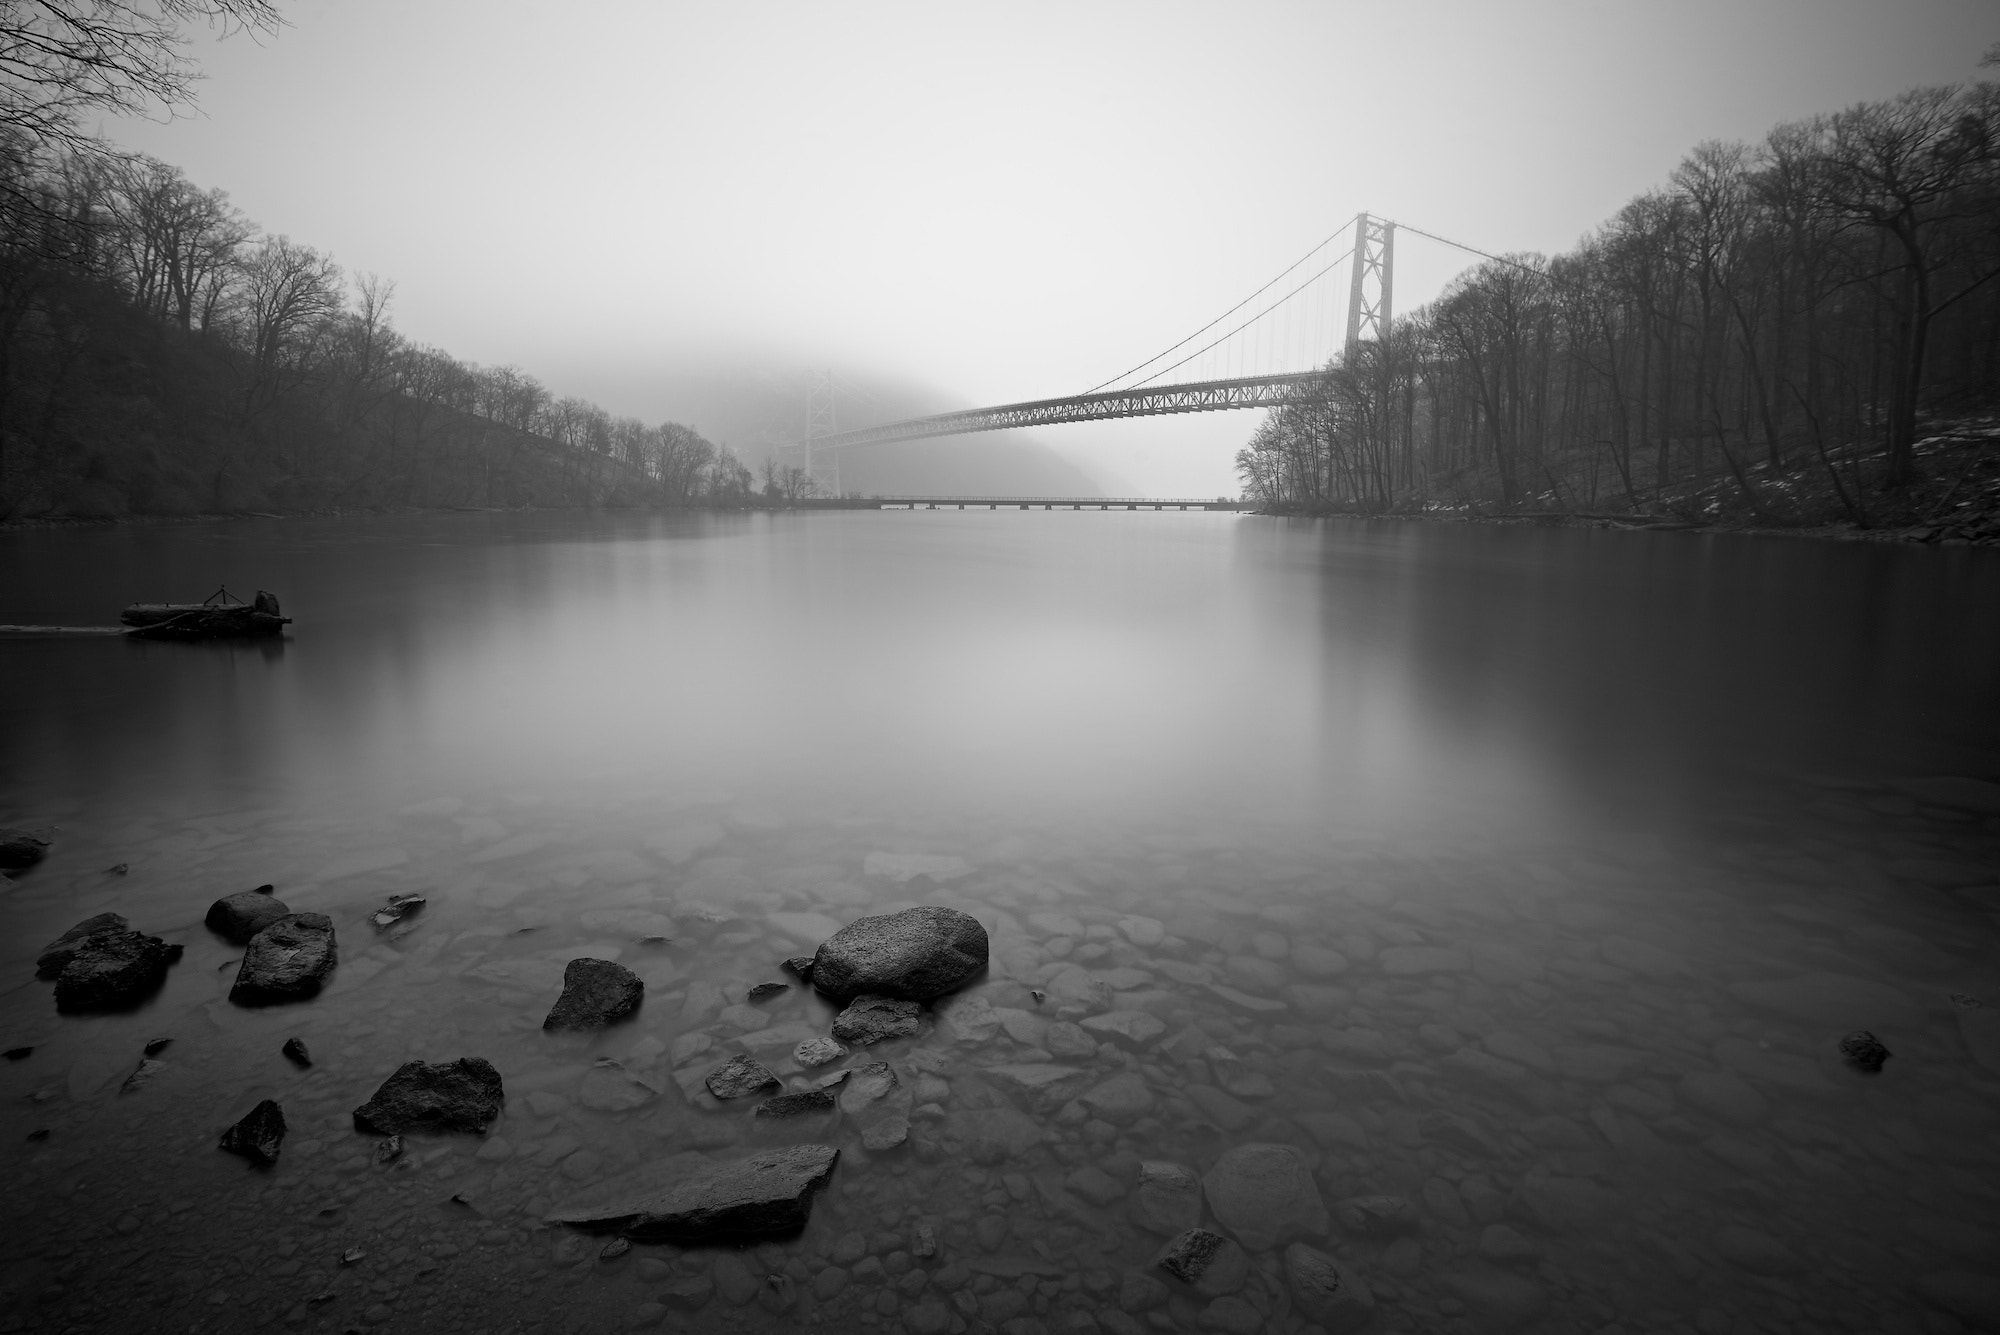 Photograph Bear Mountain Bridge by Michael Neil O'Donnell on 500px